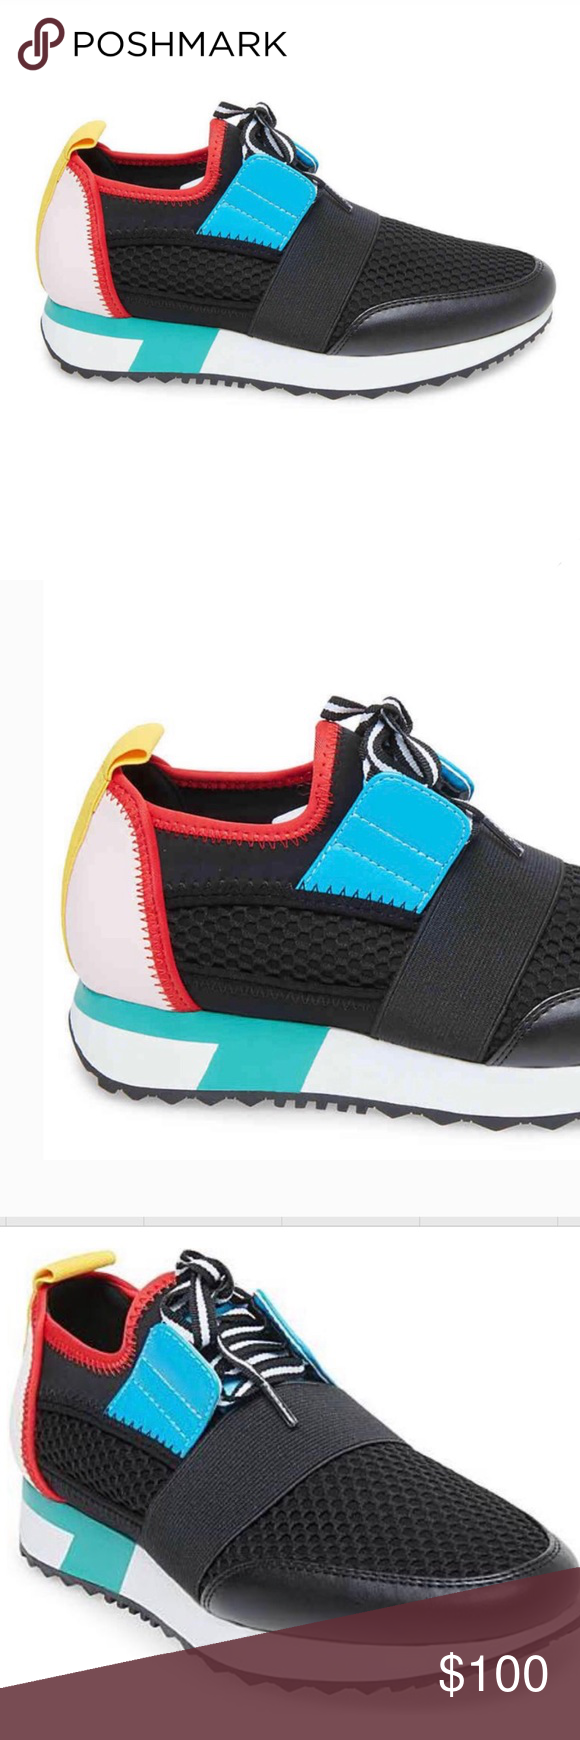 ecfeb8d1a65 Steve Madden Arctic Sneakers colorblock NWT These will be your new ...